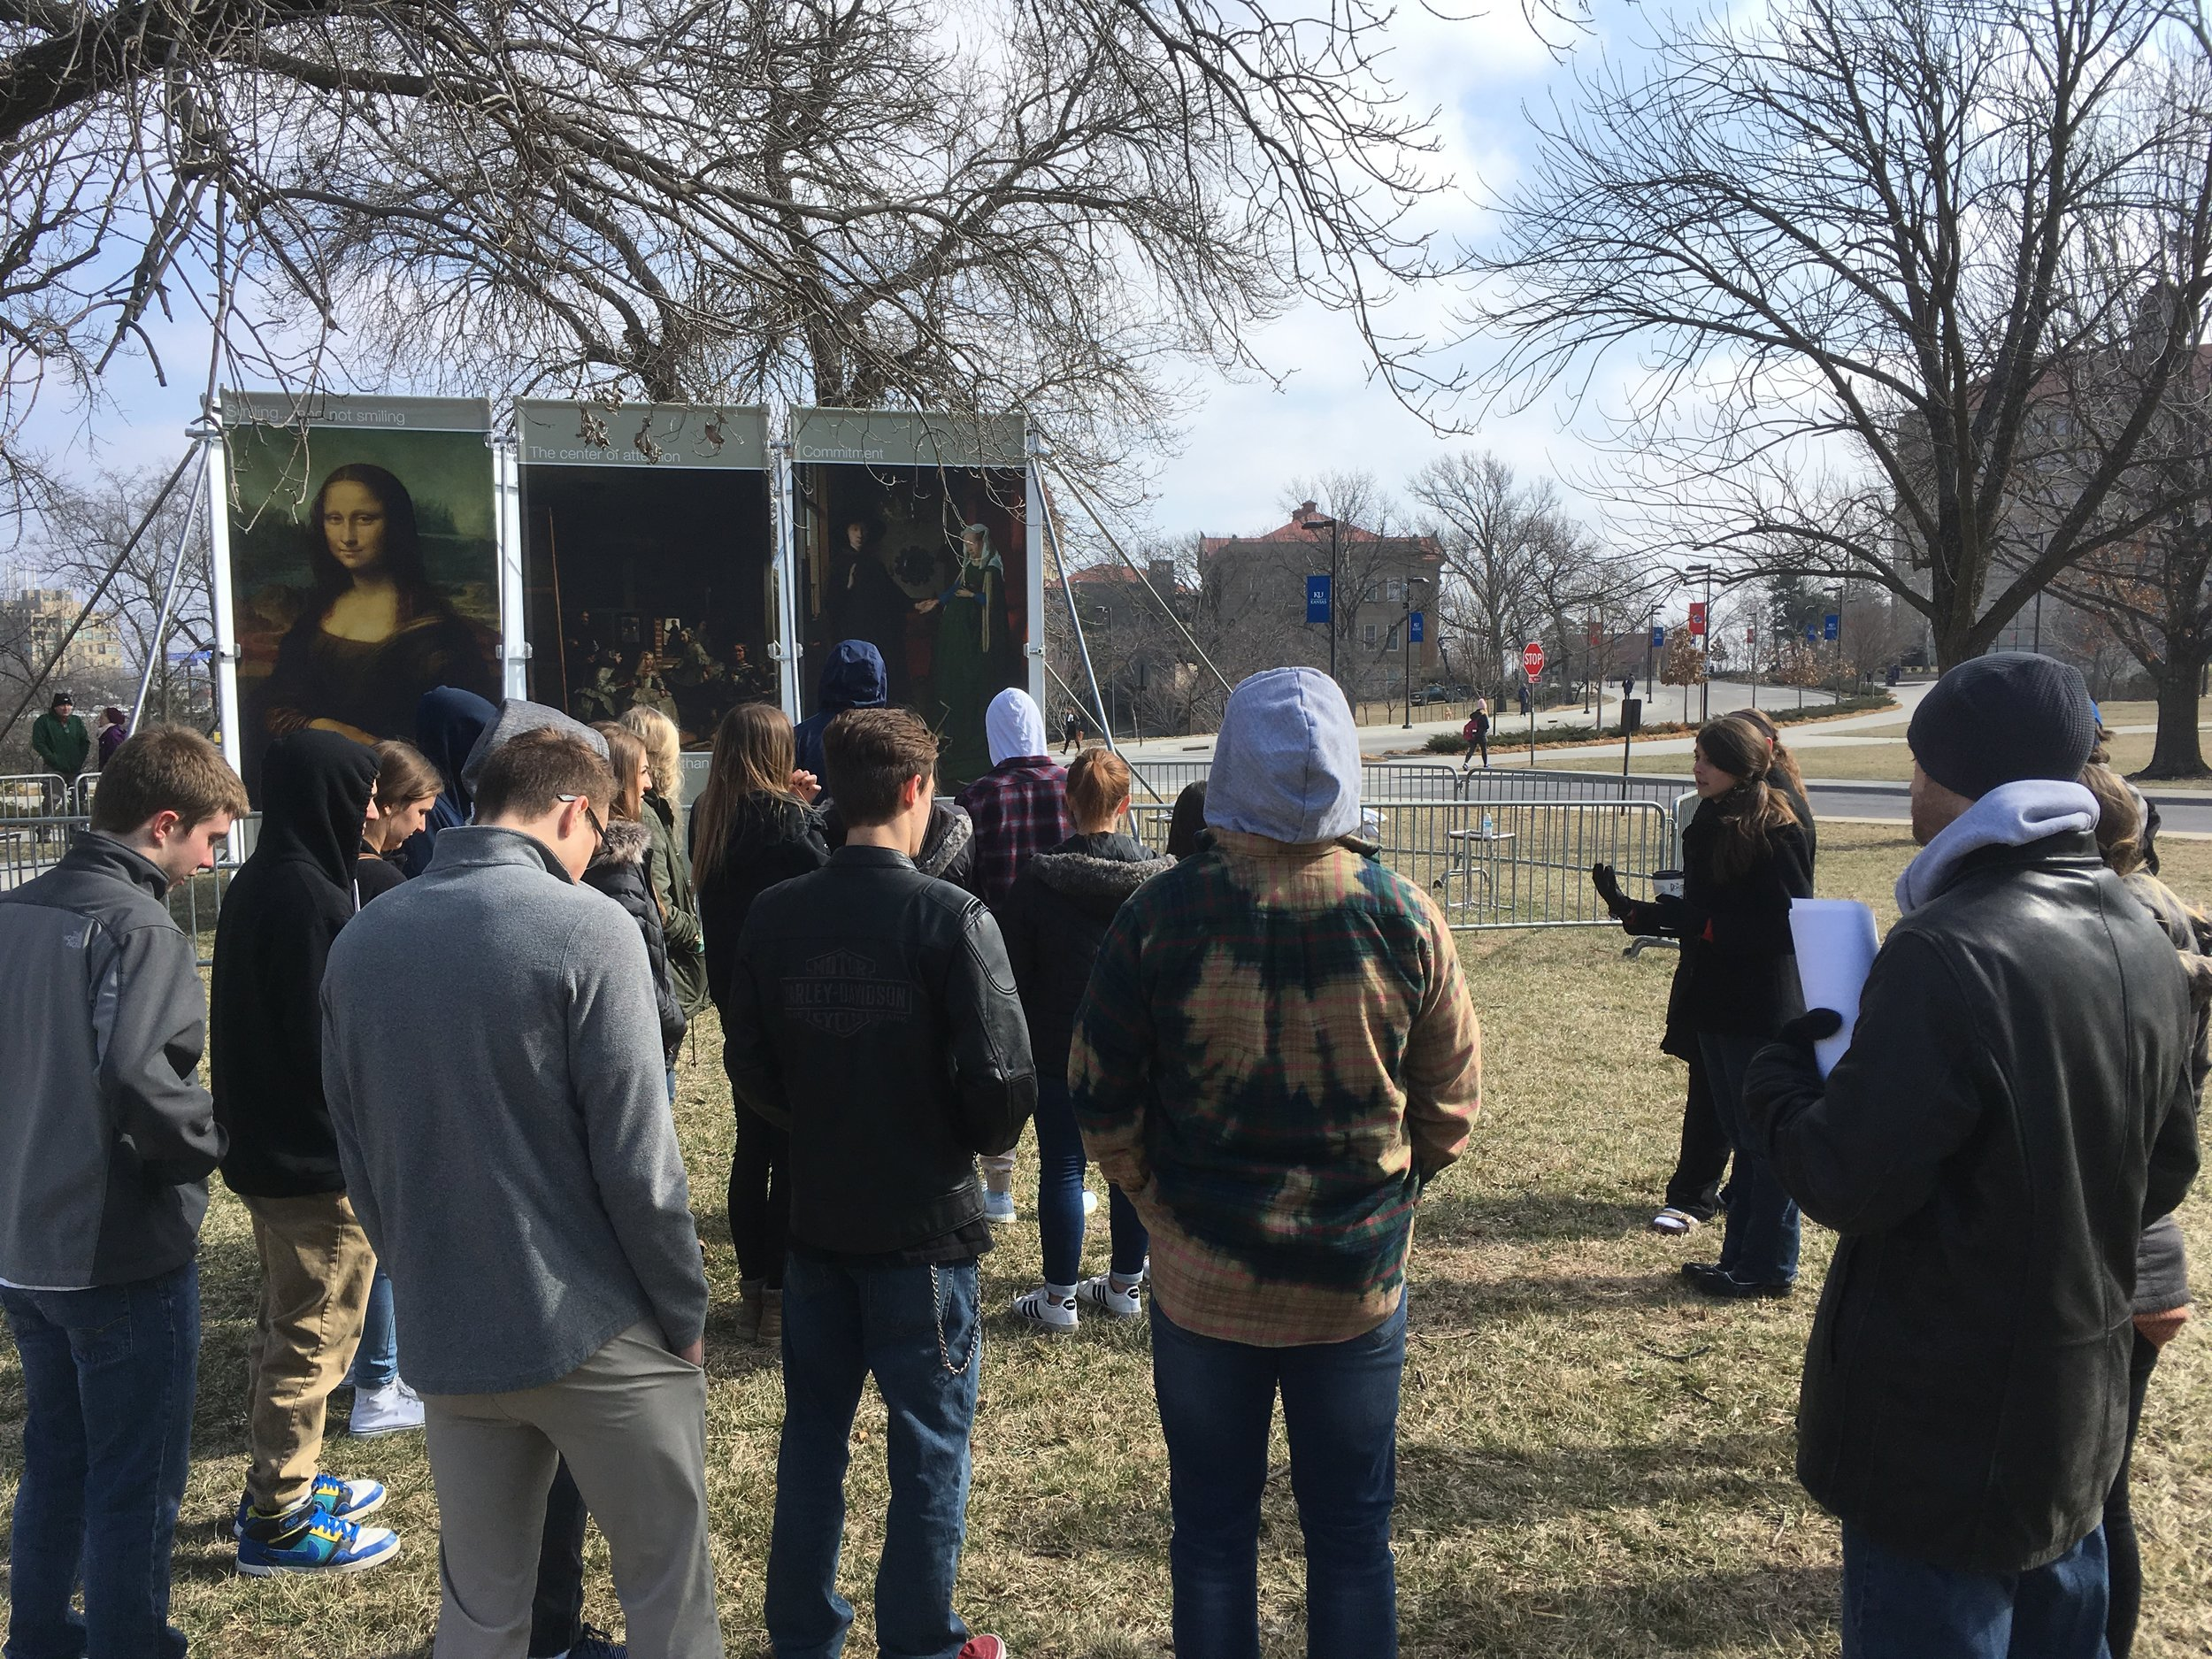 Spencer (right) and his students listen as Rebecca Hotovy describes JFA's   Art of Life   Exhibit at the recent University of Kansas outreach event in March 2018.